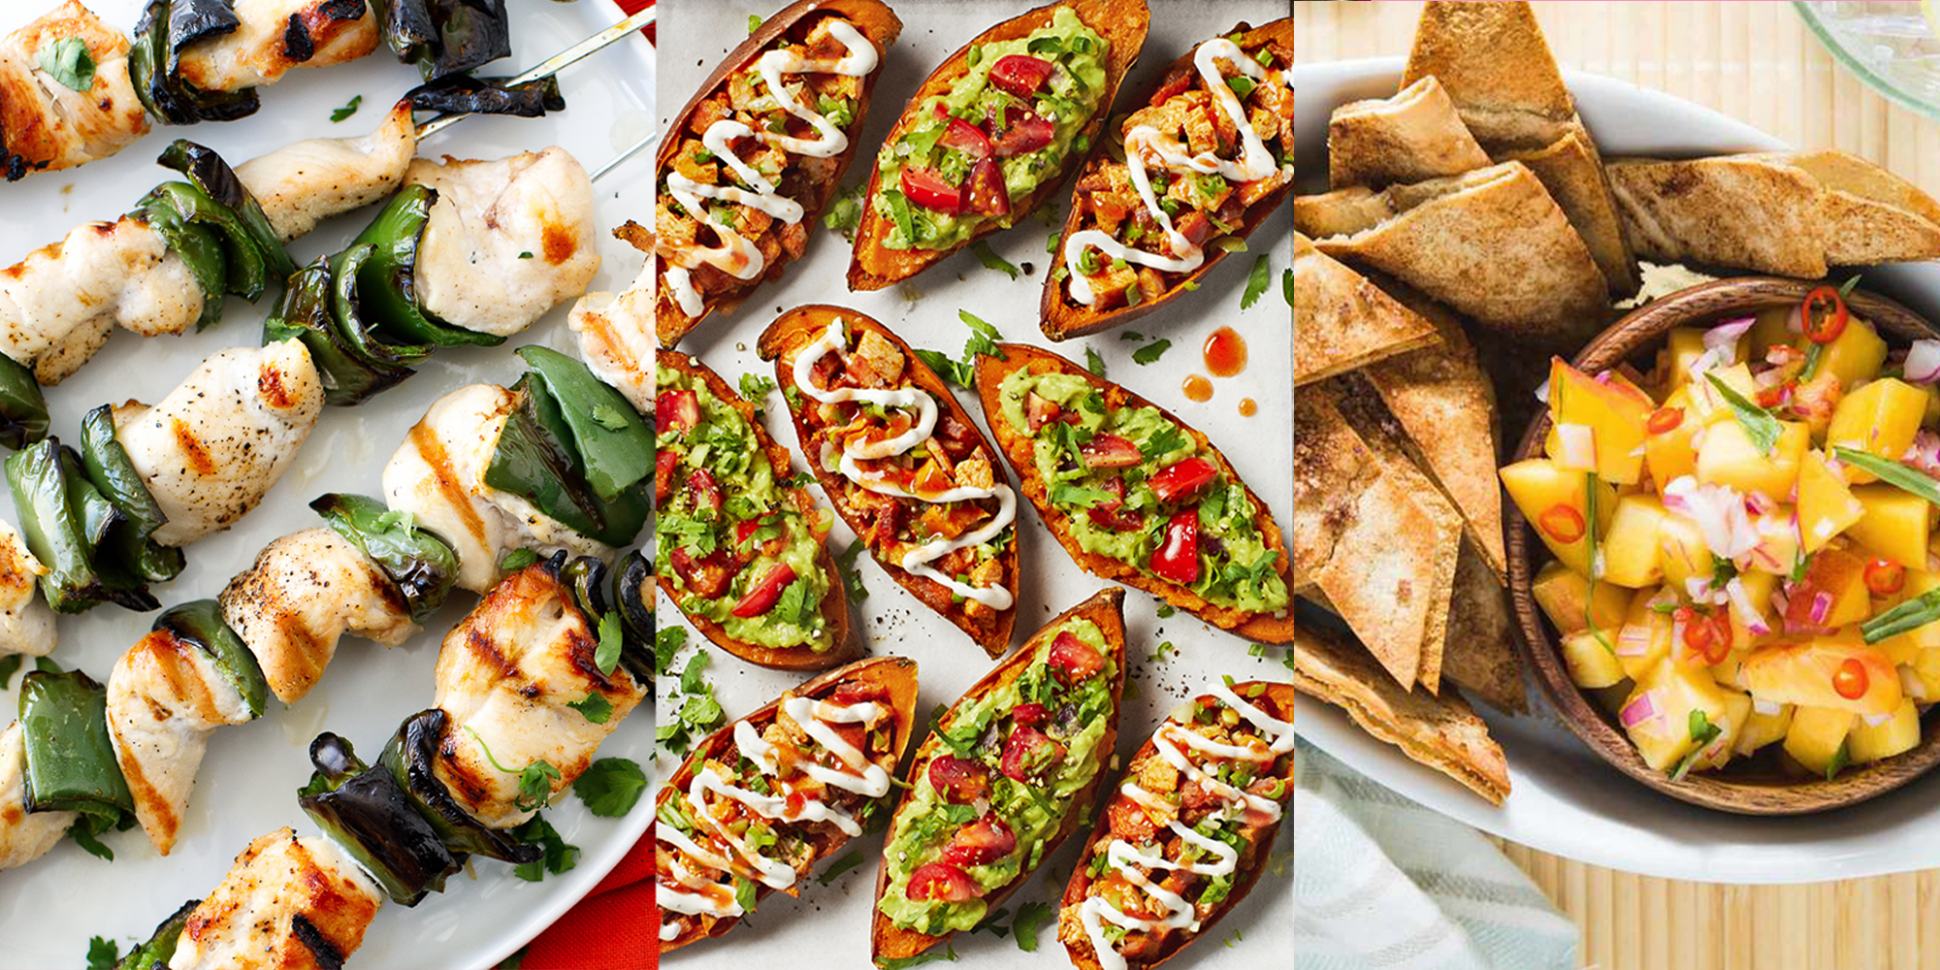 15 Last-Minute Party Snacks - These Recipes are So Easy to Make - recipes pre dinner nibbles